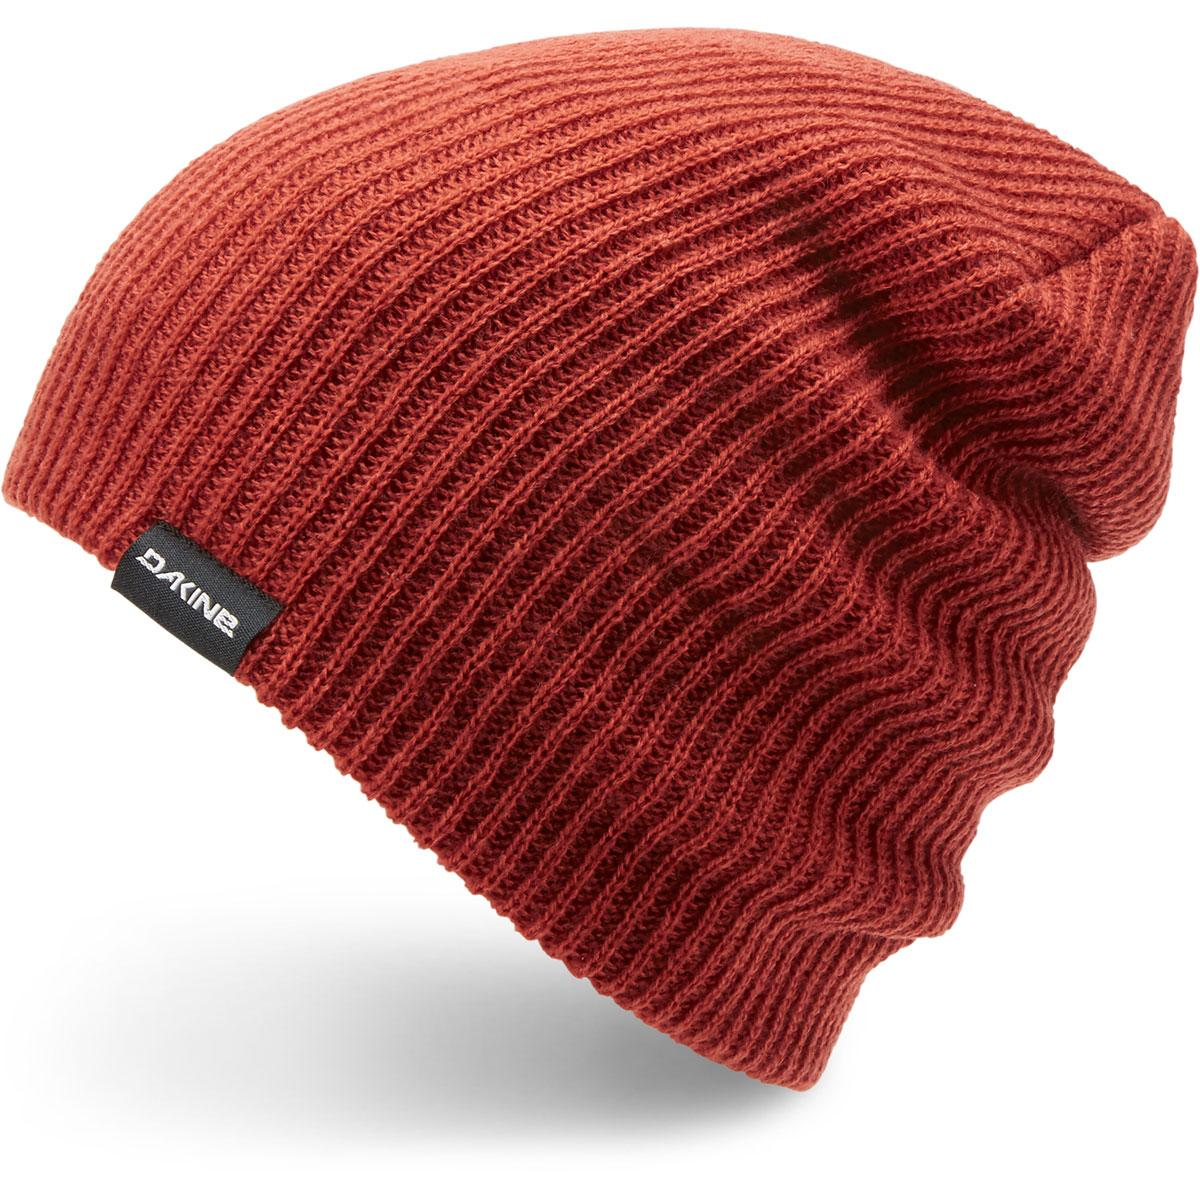 Dakine Tall Boy beanie in Tandori